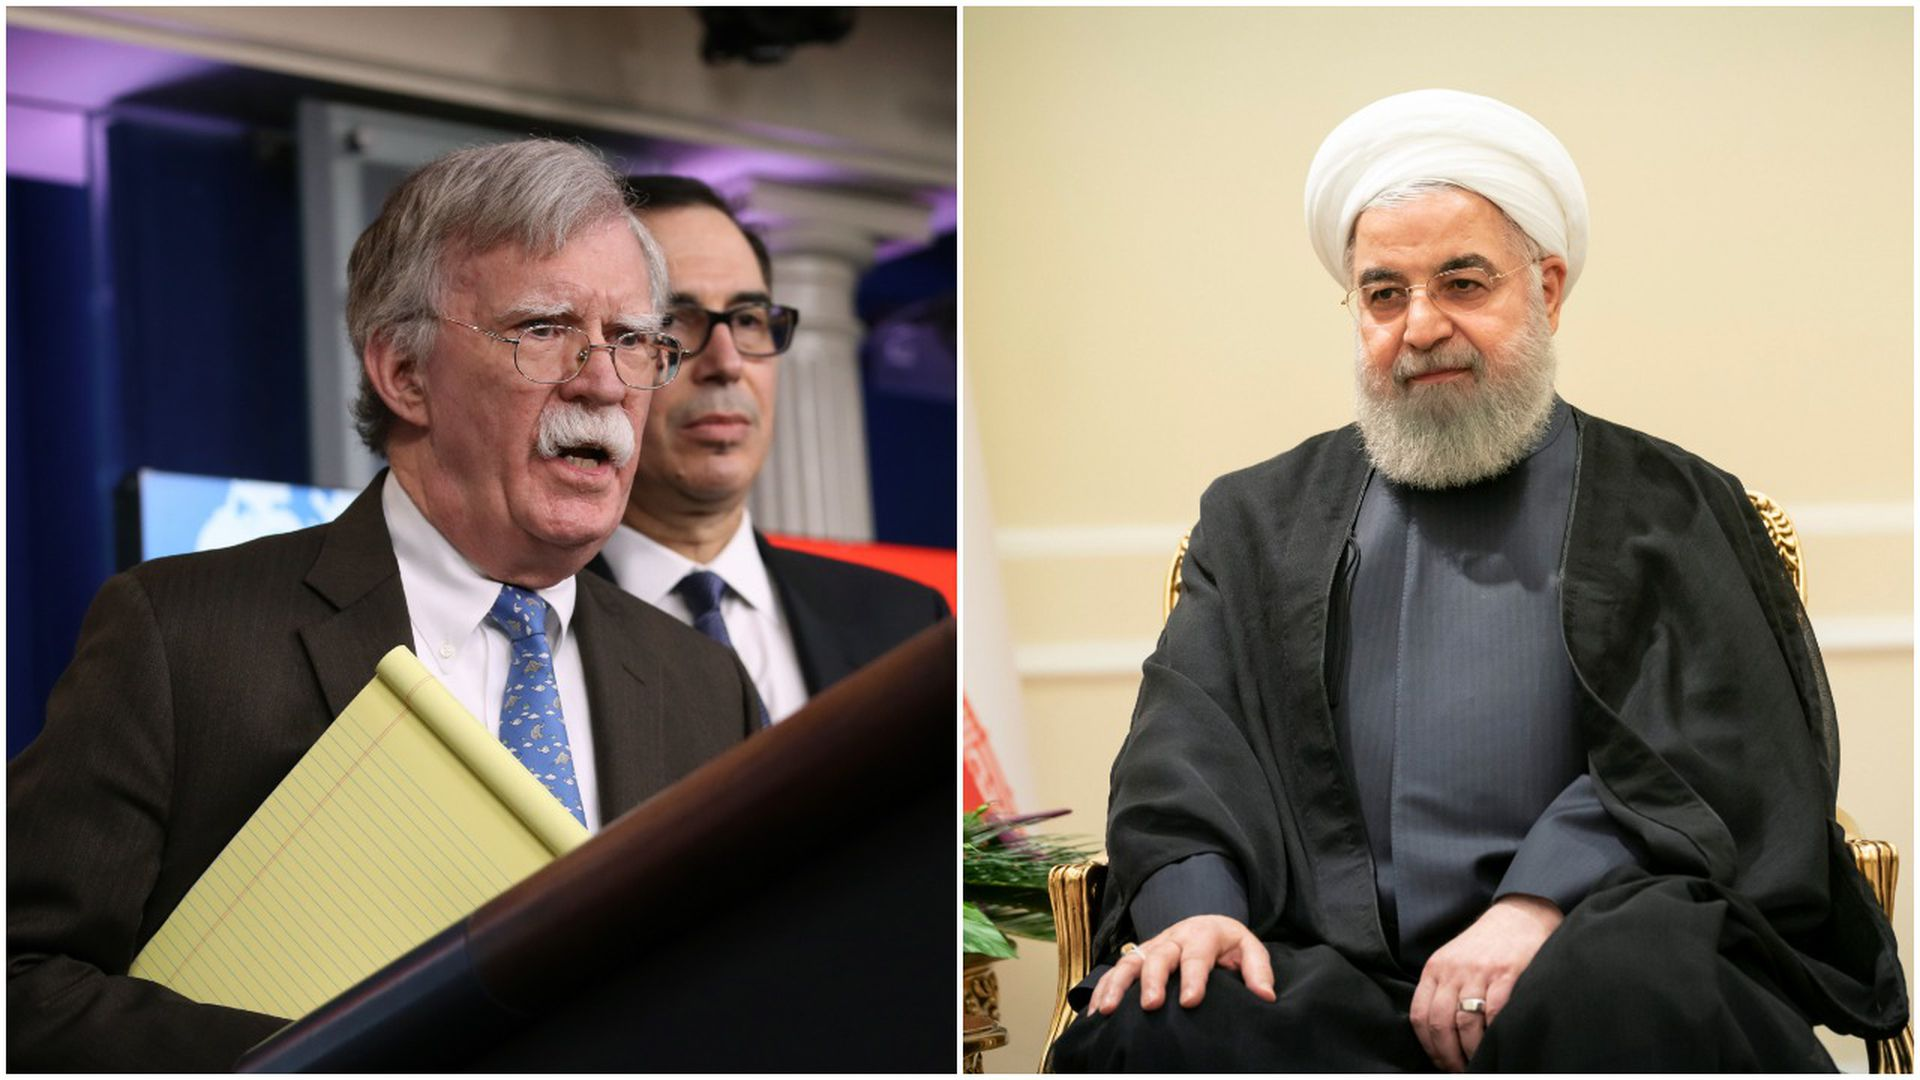 Collage of former national security adviser John Bolton and Iranian President Hassan Rouhani